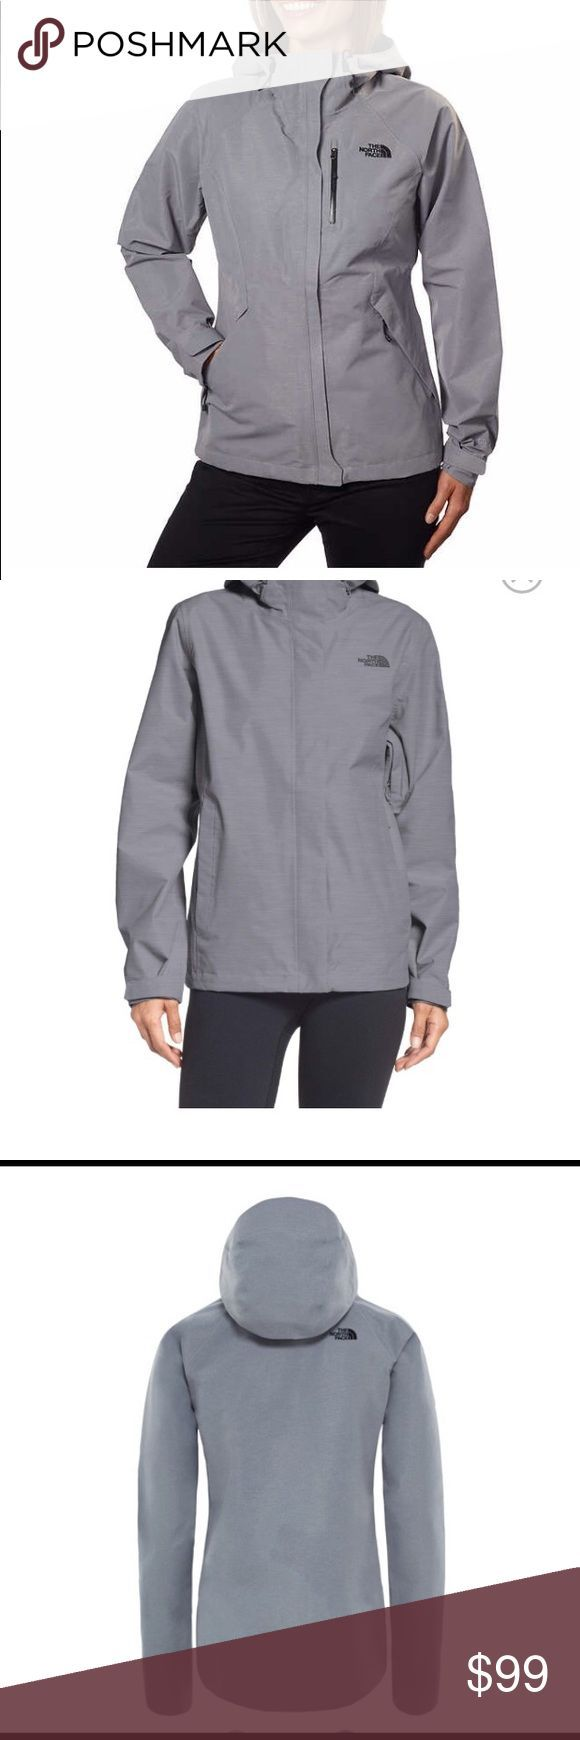 The North Face Womens Dryzzle Jacket THE NORTH FACE